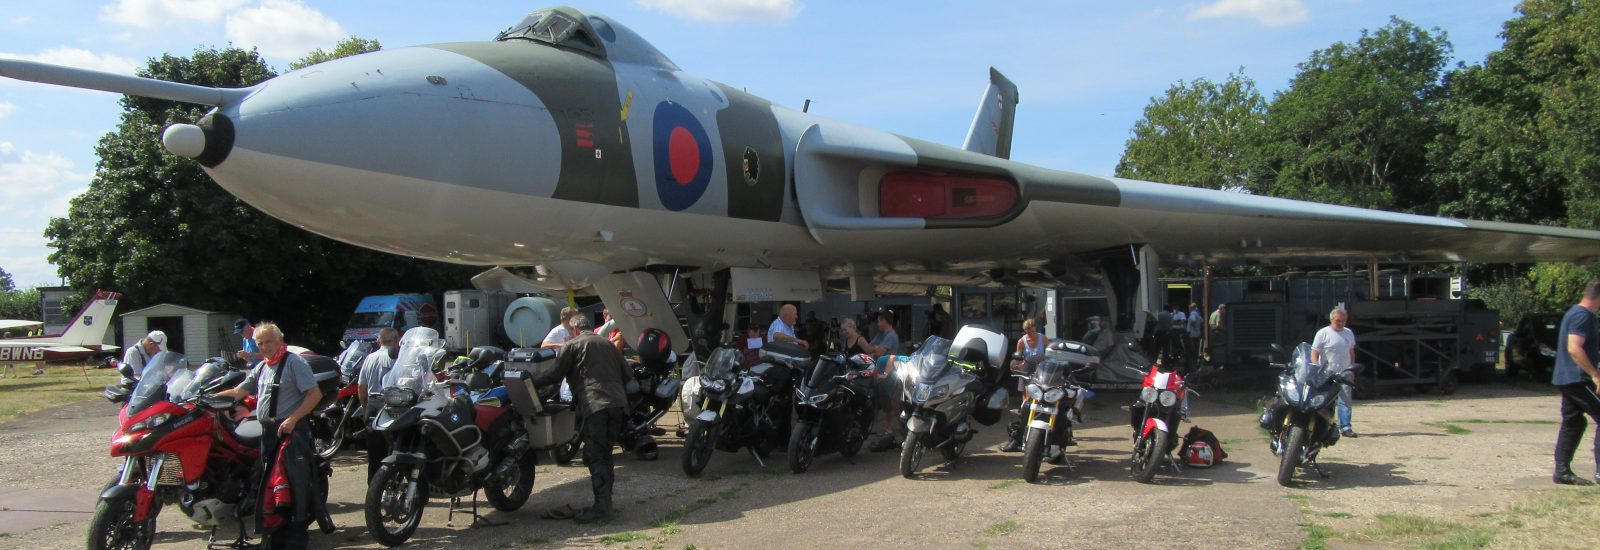 Royston & District Motorcycle Club